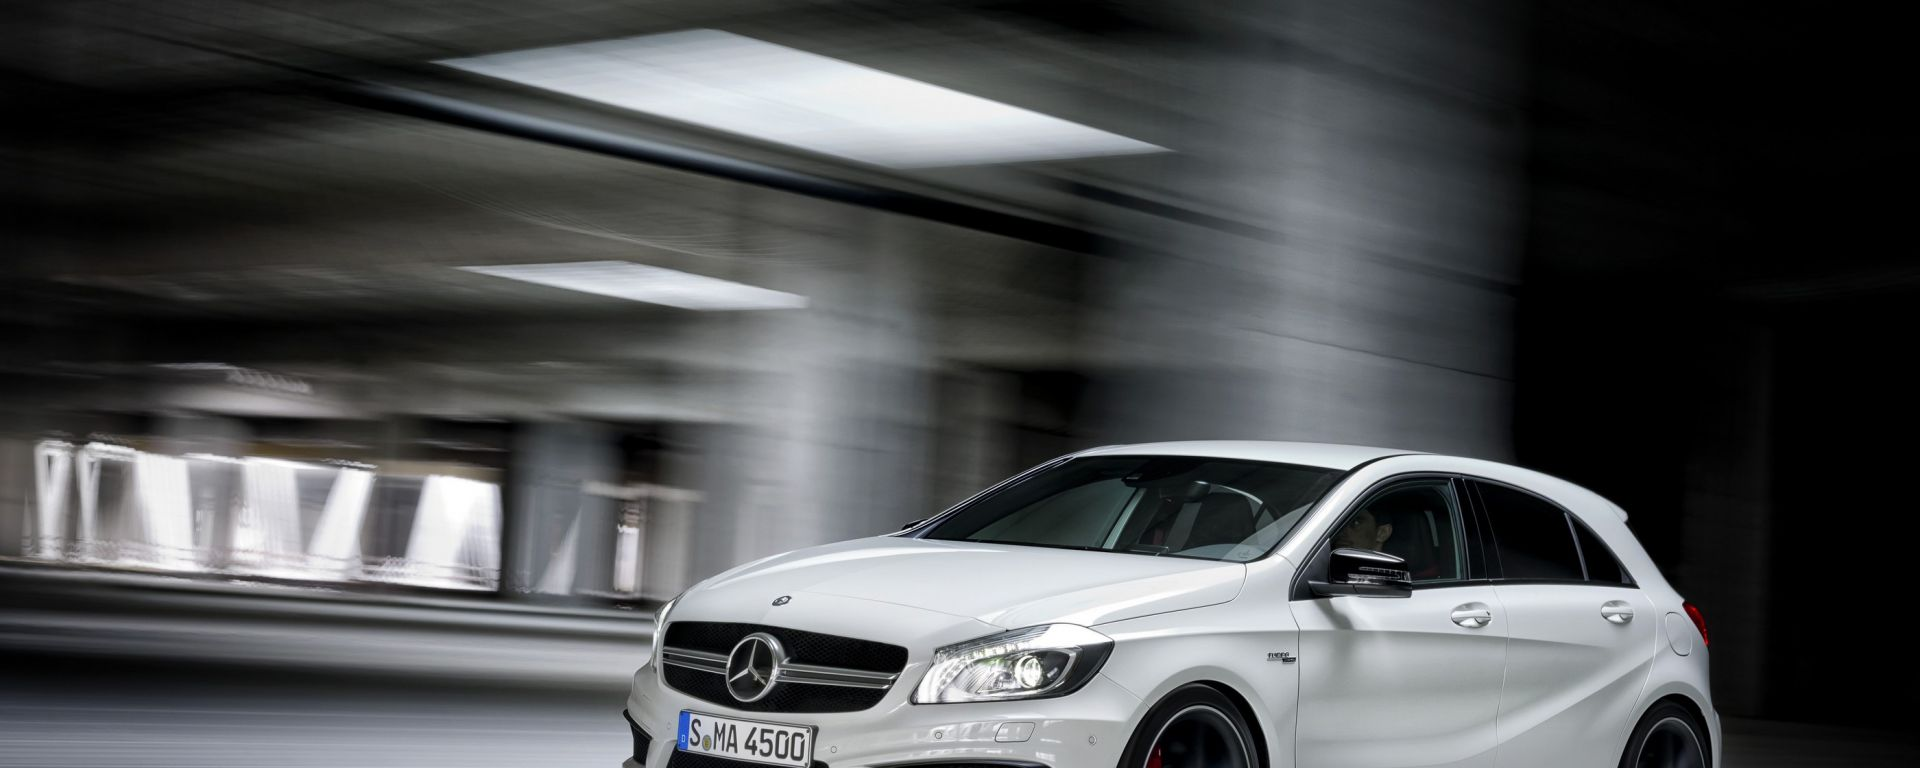 Mercedes A45 AMG, c'è anche un video